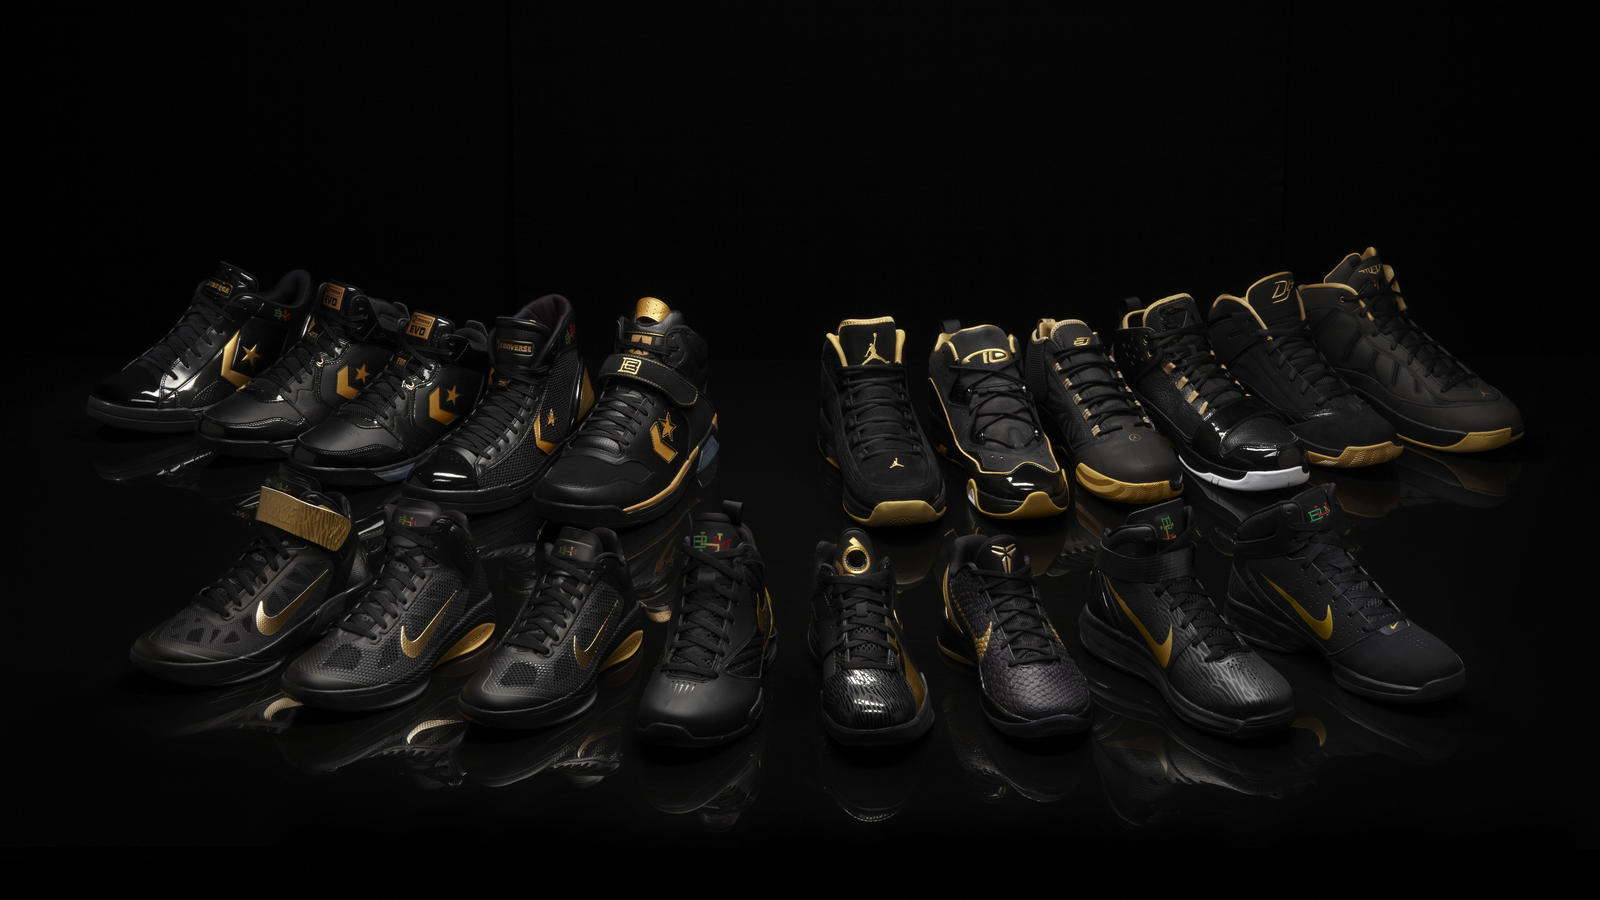 online store f48f7 37aa3 Nike Converse Jordan Group Shot. Air Force 1 Premium Details 833.  Air Force 1 Premium Pairs . Air Force 1 Premium Profile .  Air Jordan BHM Details 825